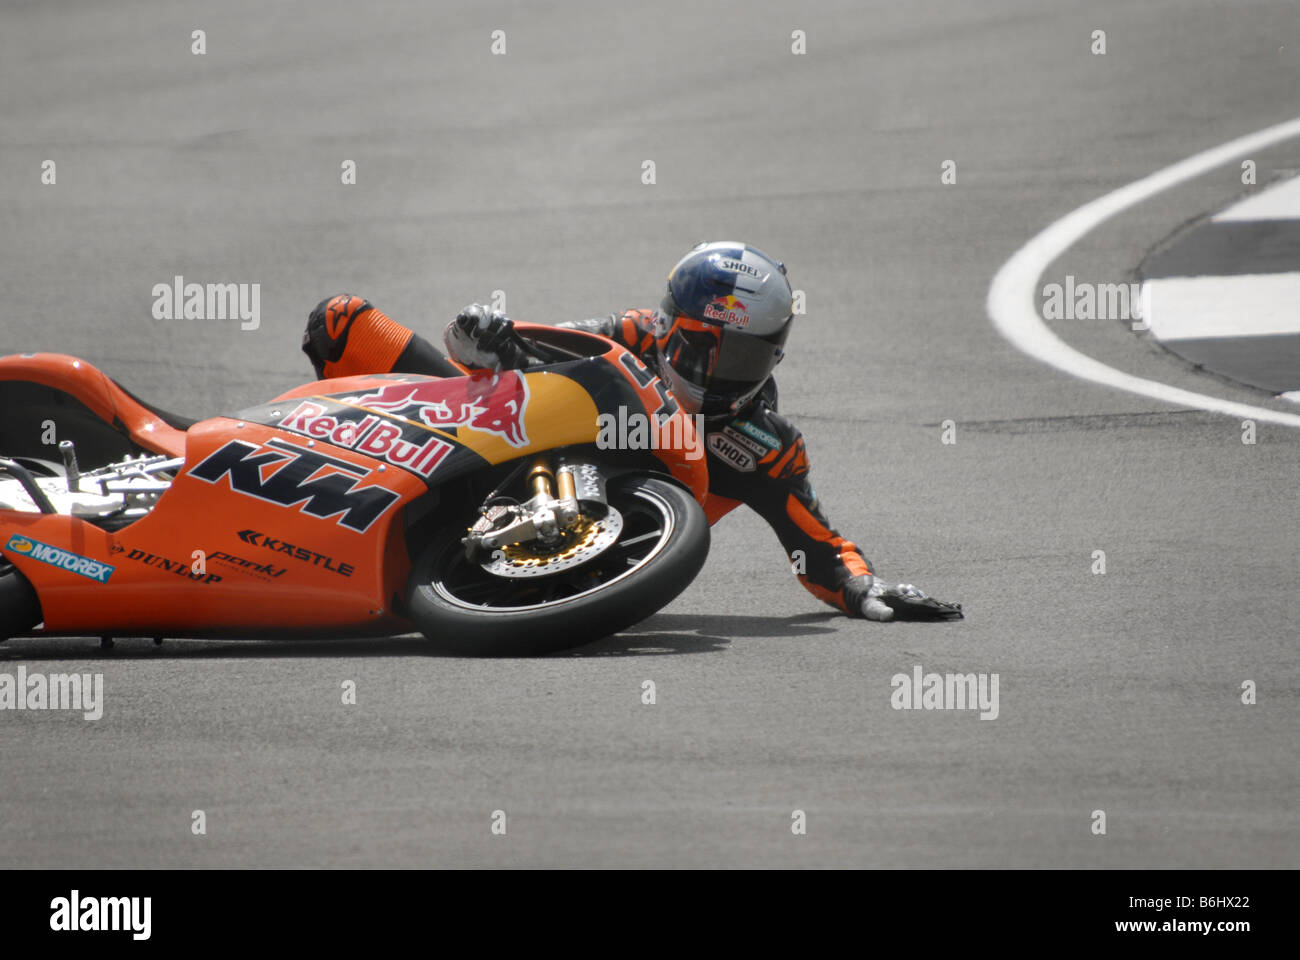 british grand prix moto gp stock photos british grand prix moto gp stock images alamy. Black Bedroom Furniture Sets. Home Design Ideas